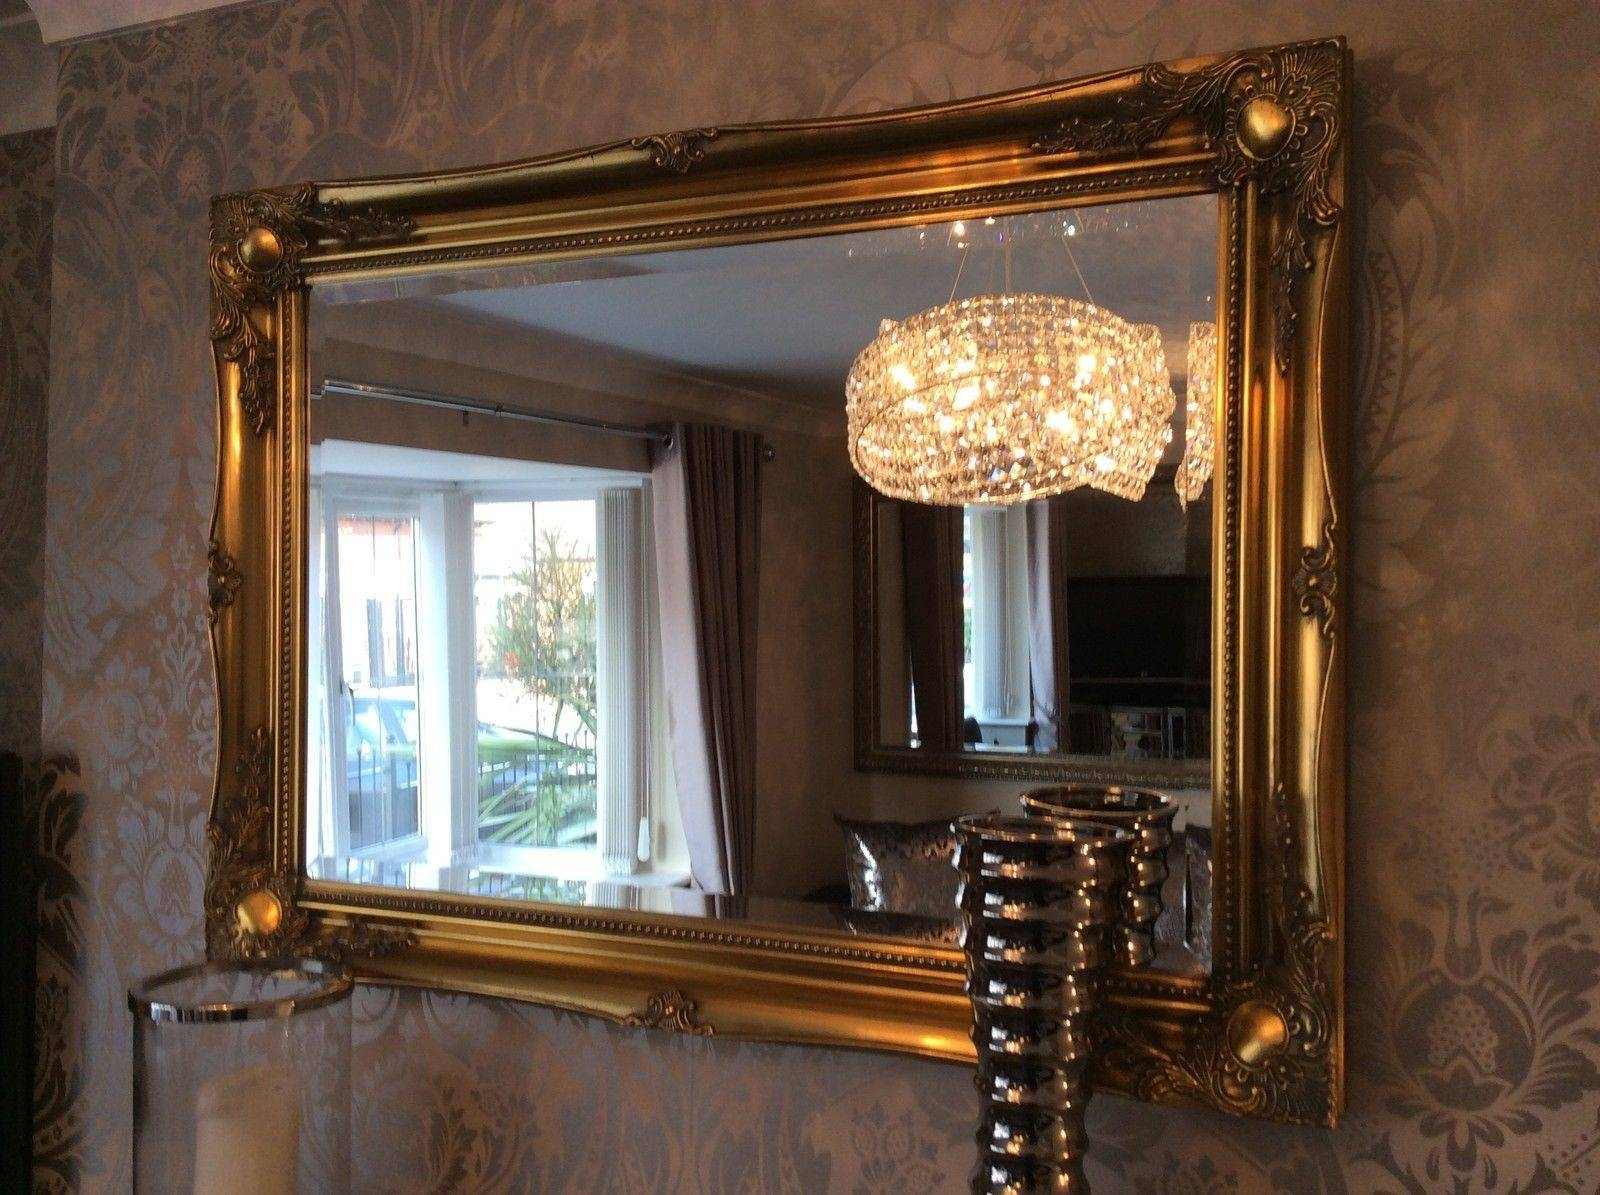 Antique Mirror Wall Cladding - Antique Wall Mirrors For Amazing within Antique Cream Wall Mirrors (Image 3 of 15)